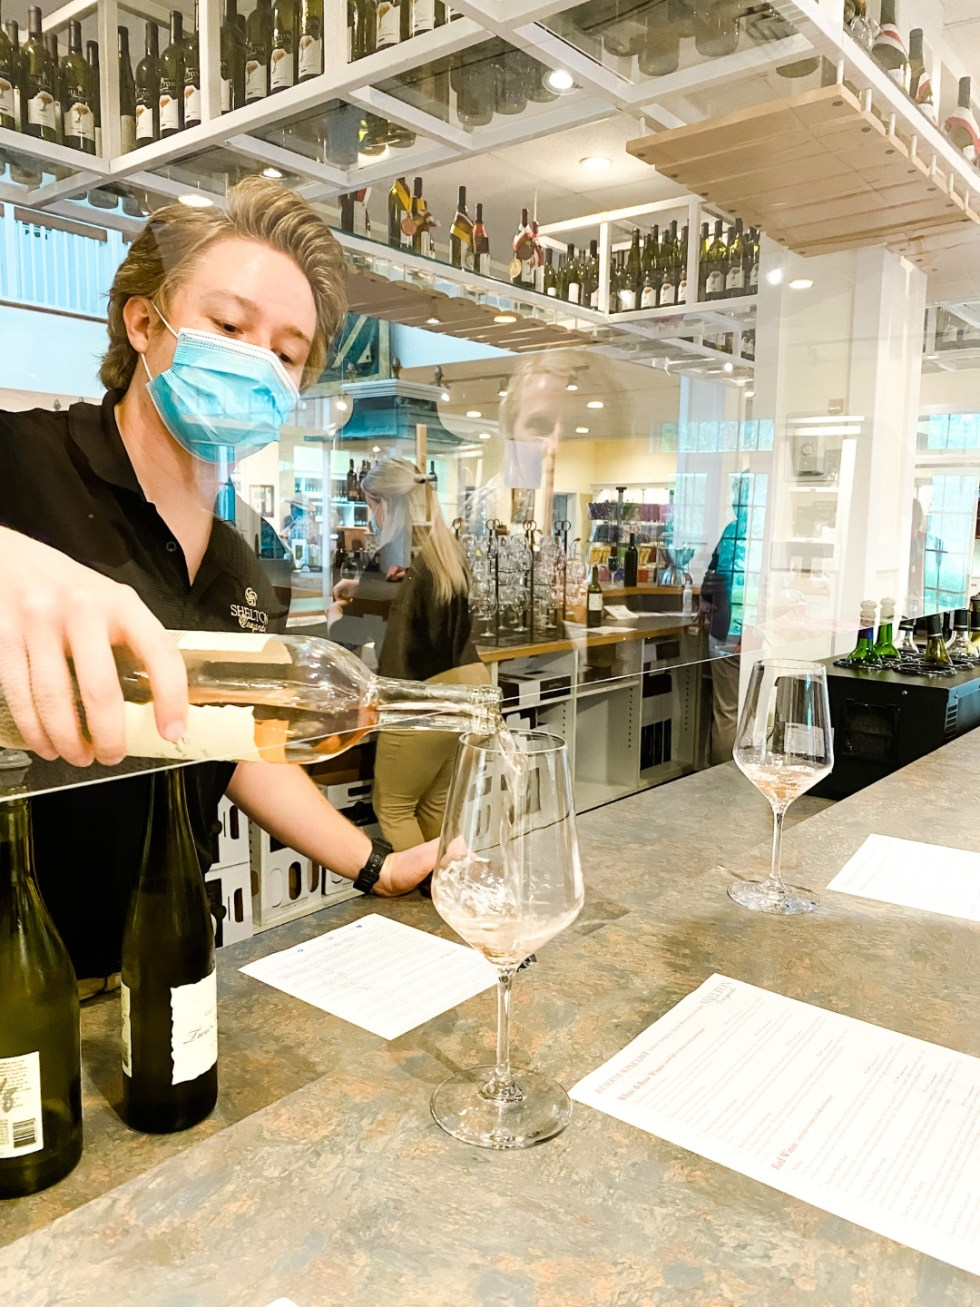 Western NC Wineries: 6 Wineries to Visit During your Next Girls' Weekend - I'm Fixin' To - @mbg0112 |Western NC Wineries by popular NC blog, I'm Fixin' To: image of a man pouring white wine at Shelton Vineyards.